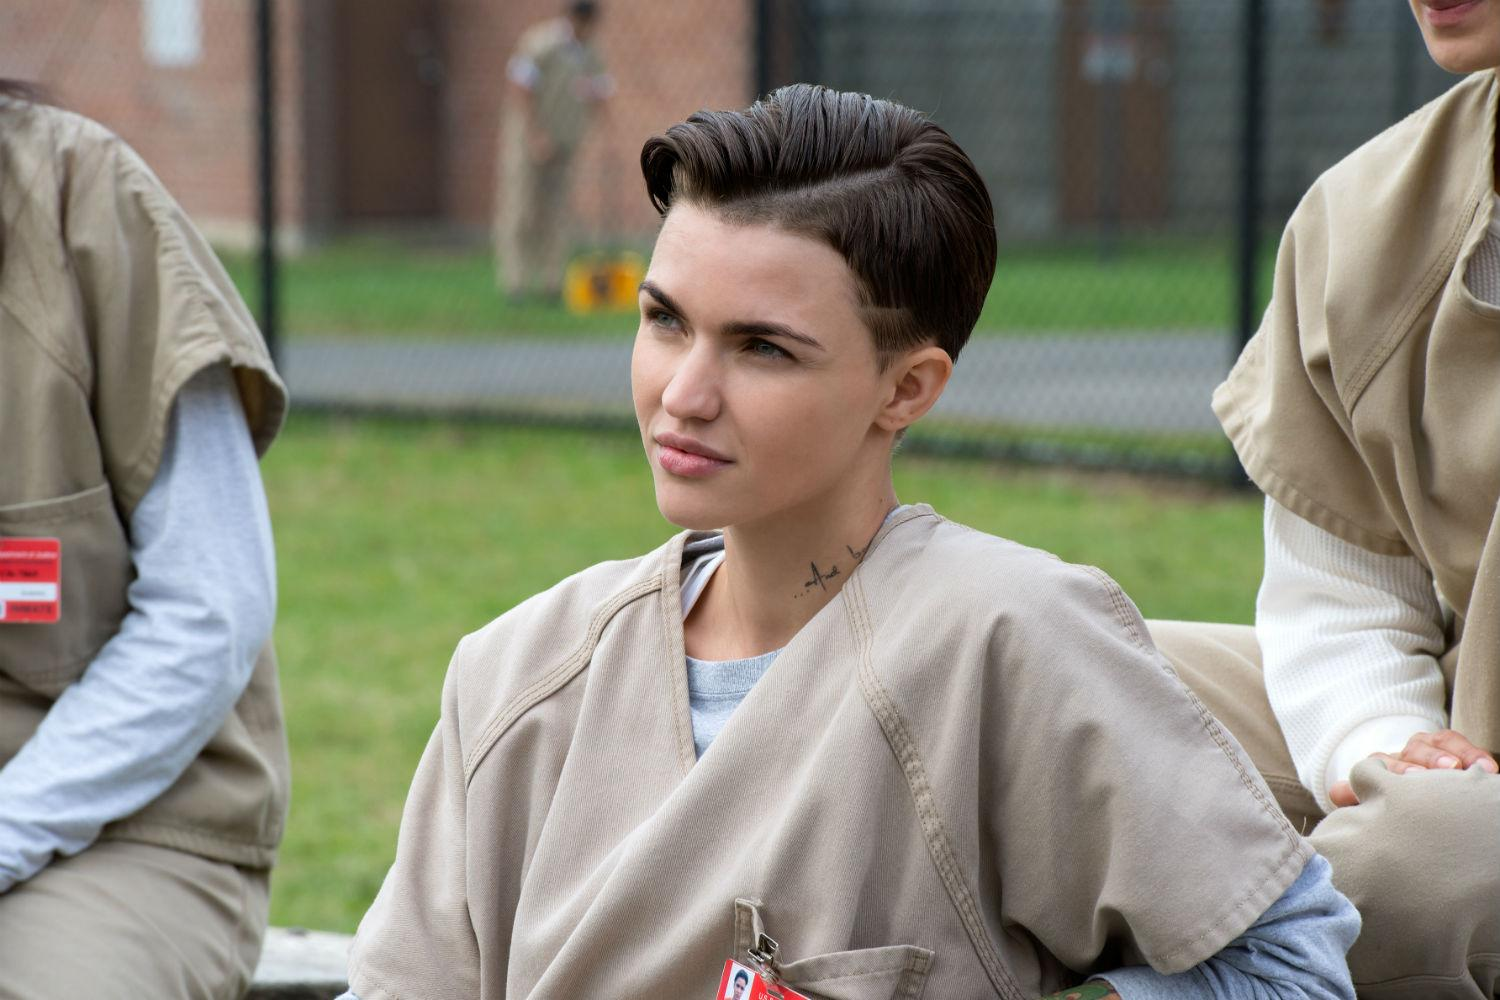 5 reasons why you really MUST tune into season 3 of Orange Is The New Black #OITNB http://t.co/I4tfGME22Q http://t.co/JTaRSFlEUa